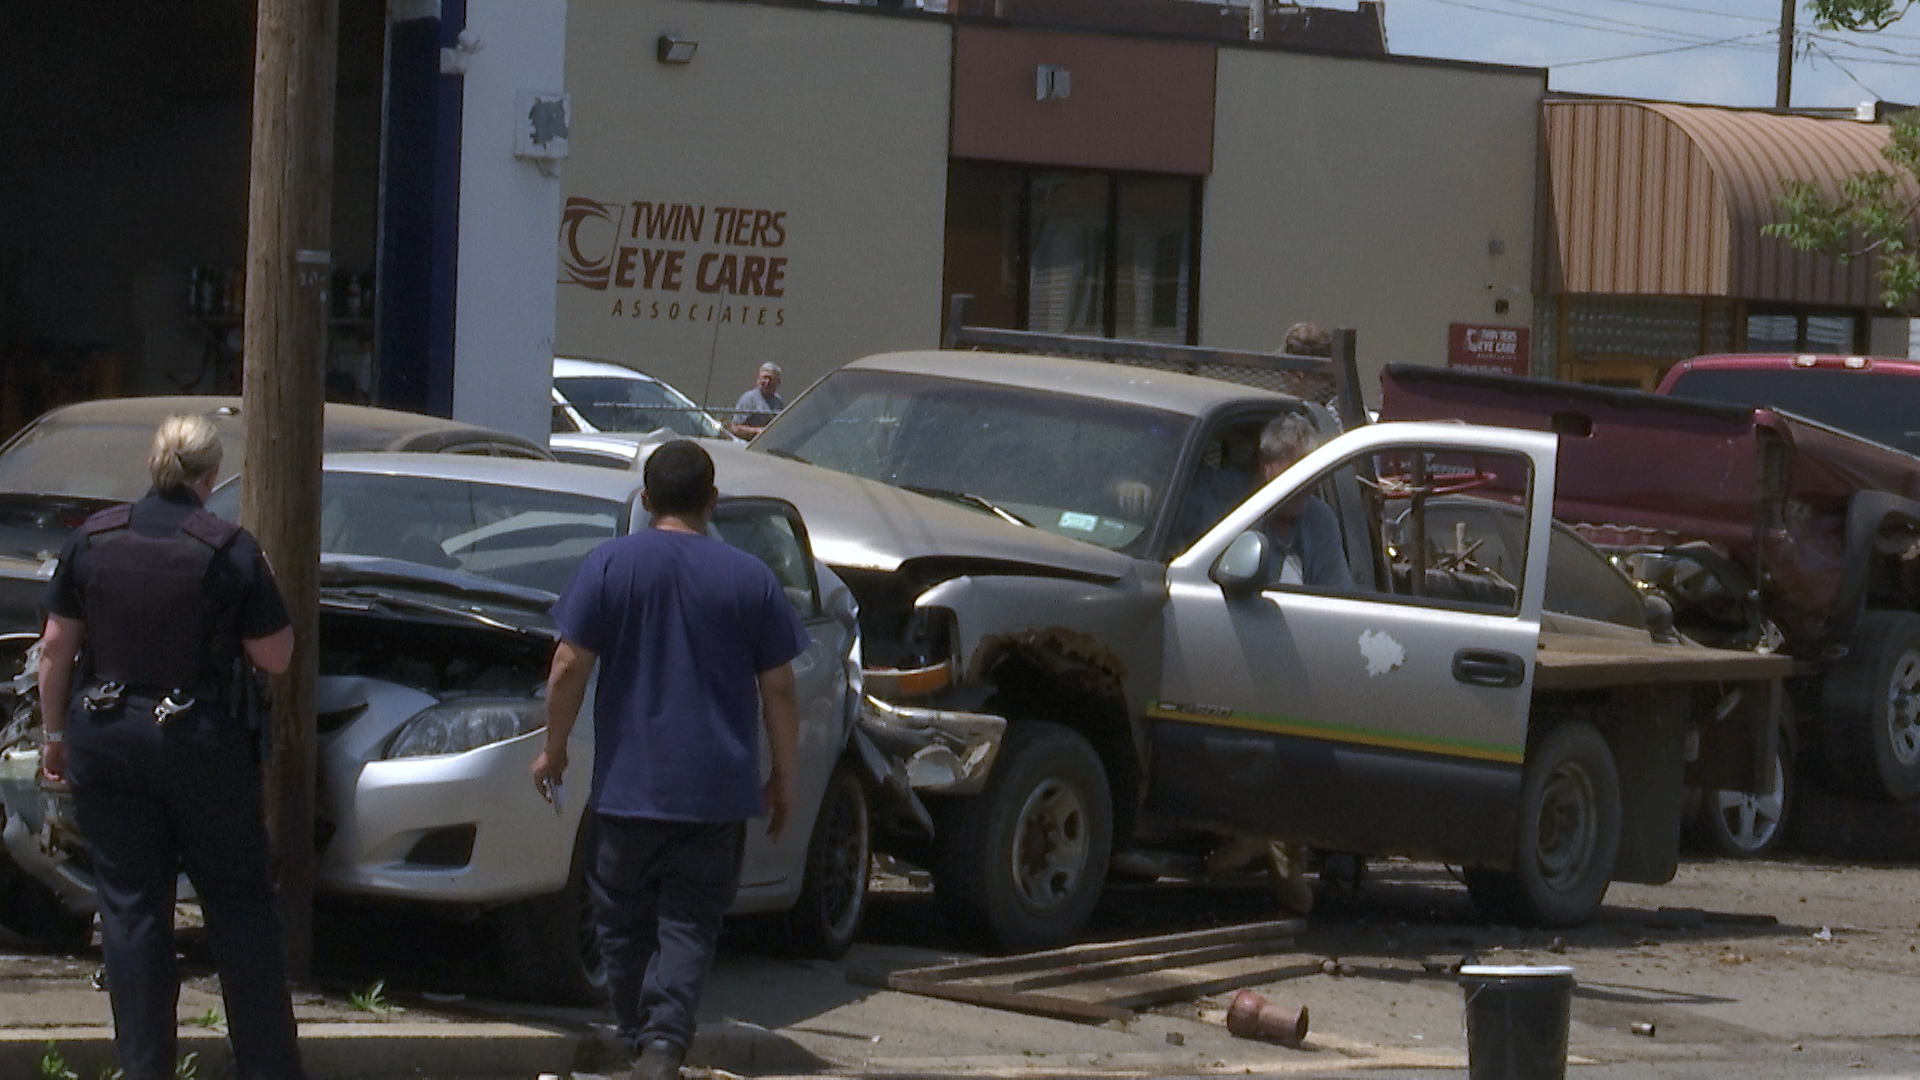 Multi-vehicle accident closes Madison Ave near St. Joes, lines down